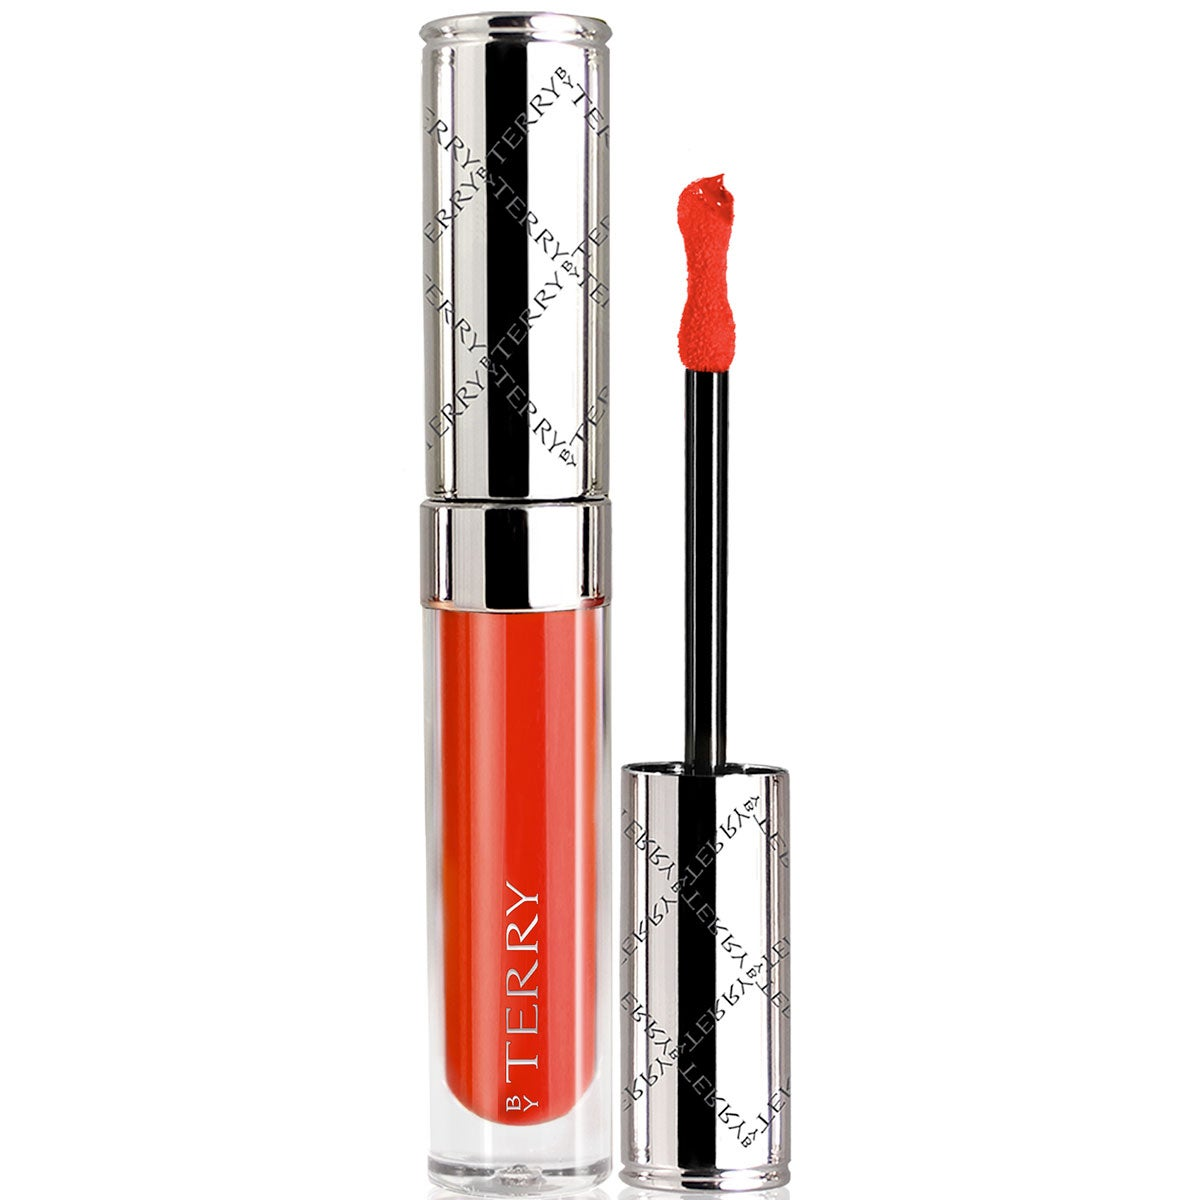 Terrybly Velvet Rouge Liquid Lipstick 2 ml By Terry Läppstift